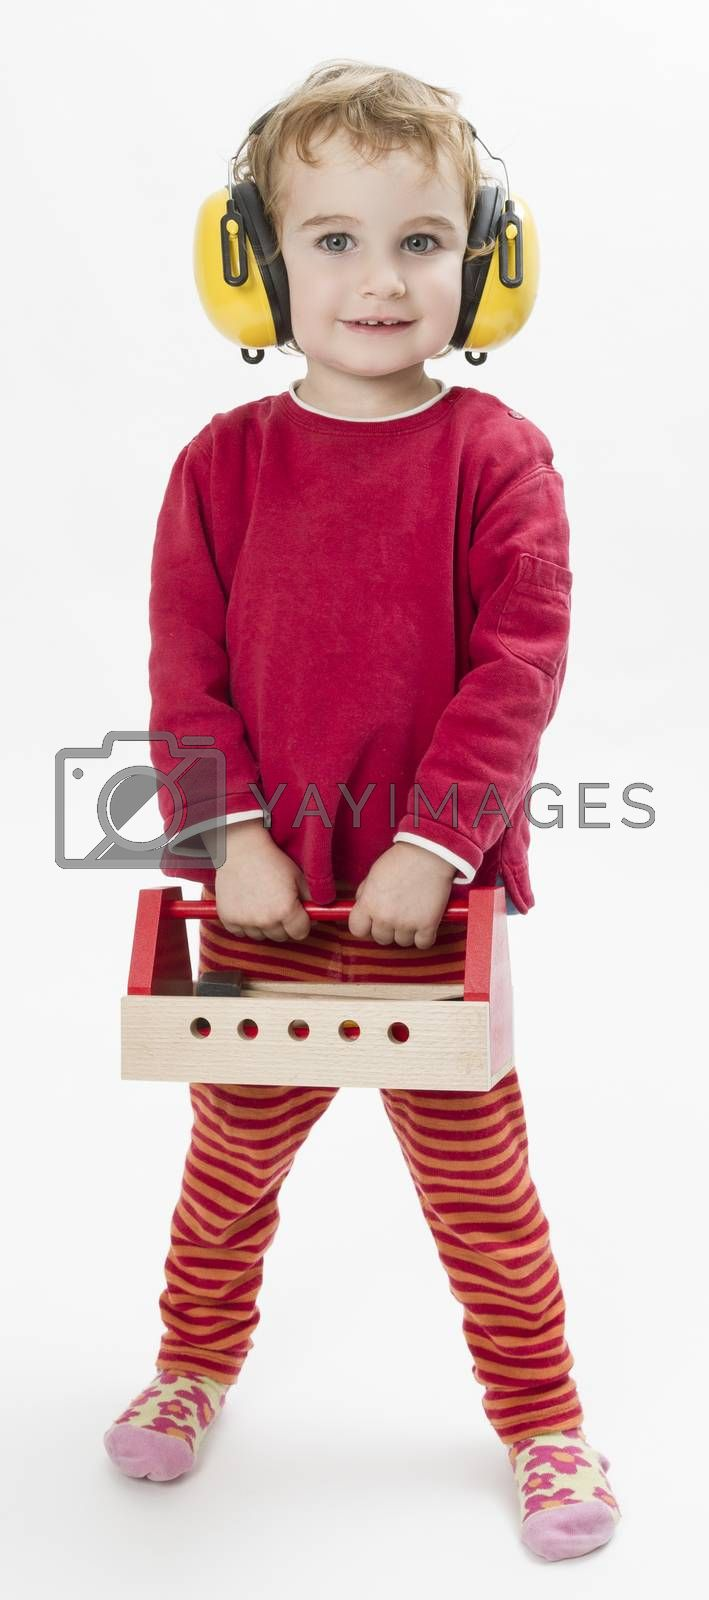 Royalty free image of child in red with toolbox and earmuffs by gewoldi